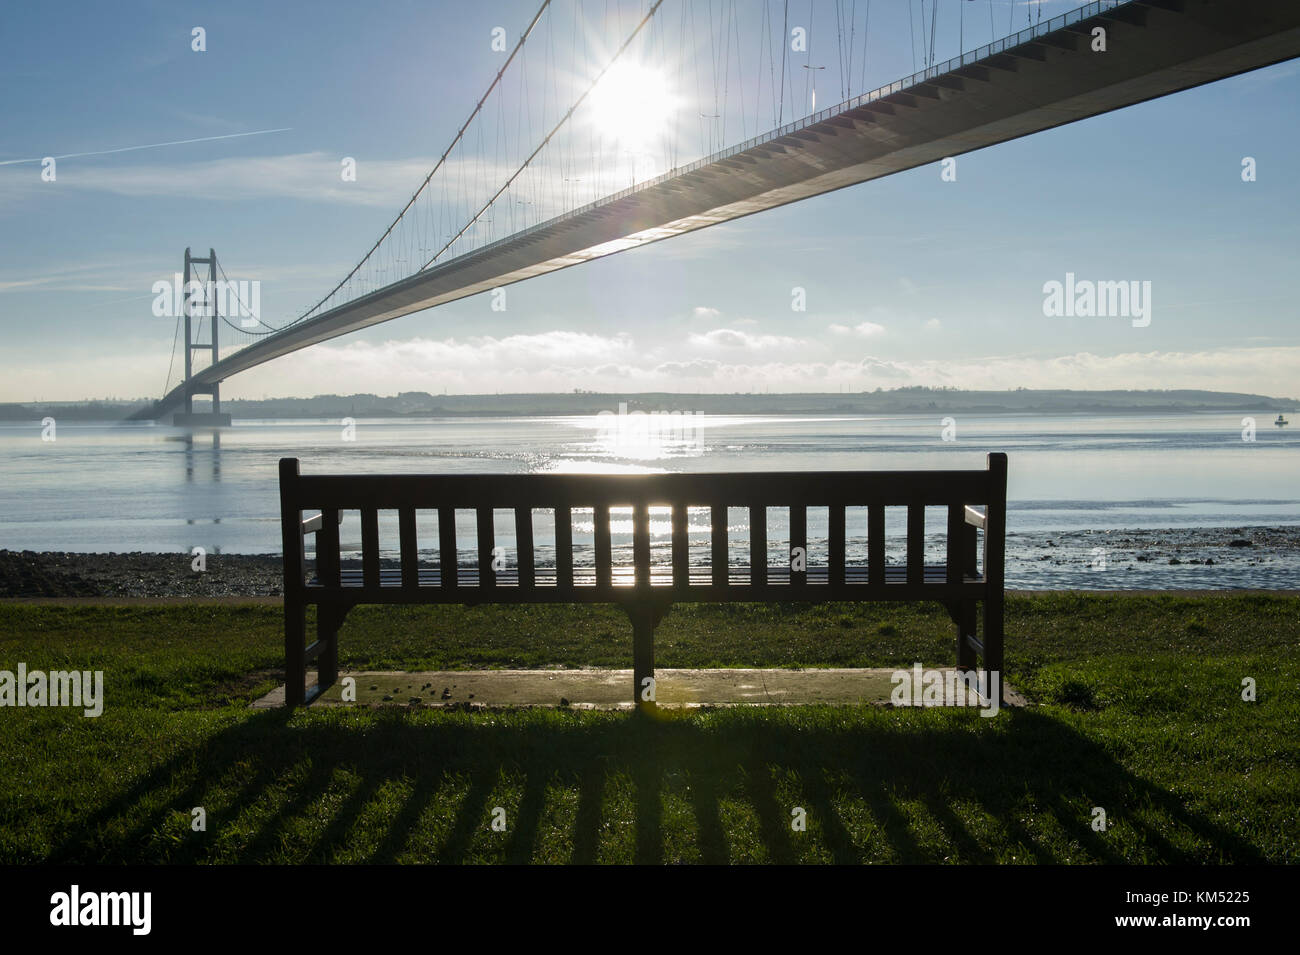 The Humber Bridge near Hull is a single span suspension bridge over the Humber estuary connecting East Yorkshire Stock Photo